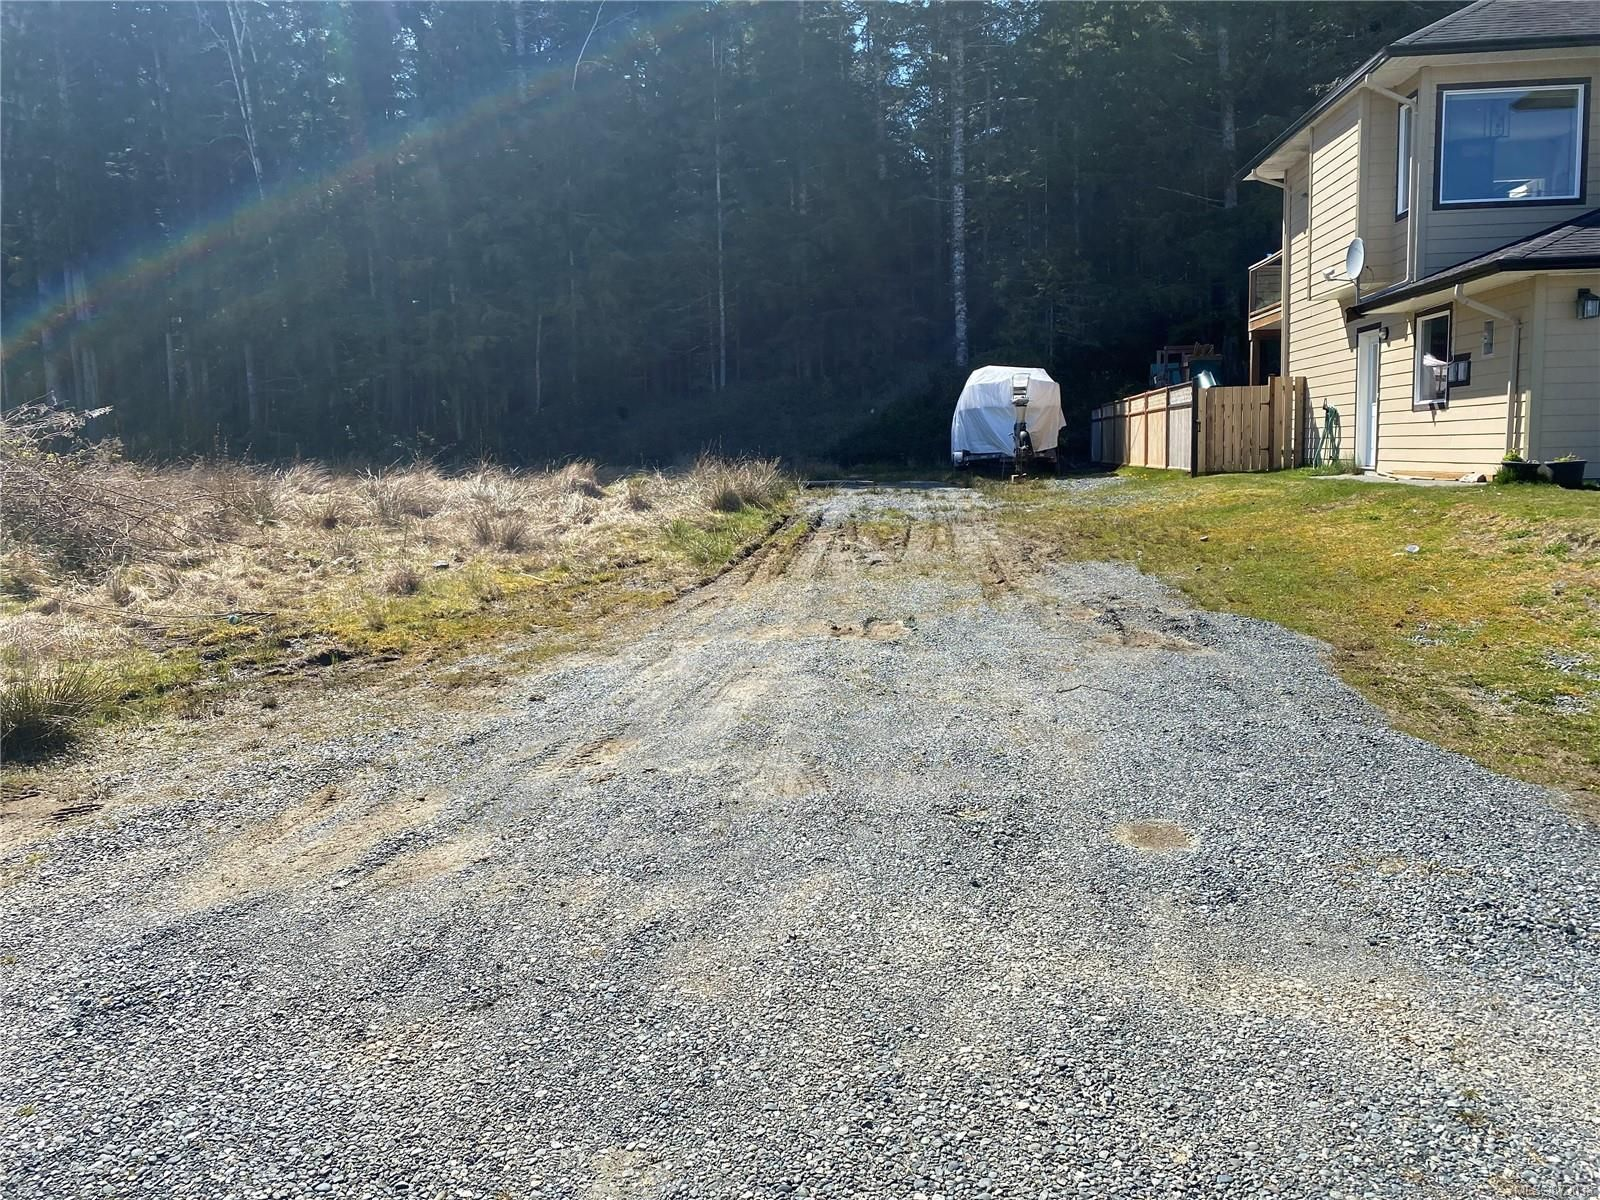 Main Photo: 6260 Hunt St in : NI Port Hardy Land for sale (North Island)  : MLS®# 873033